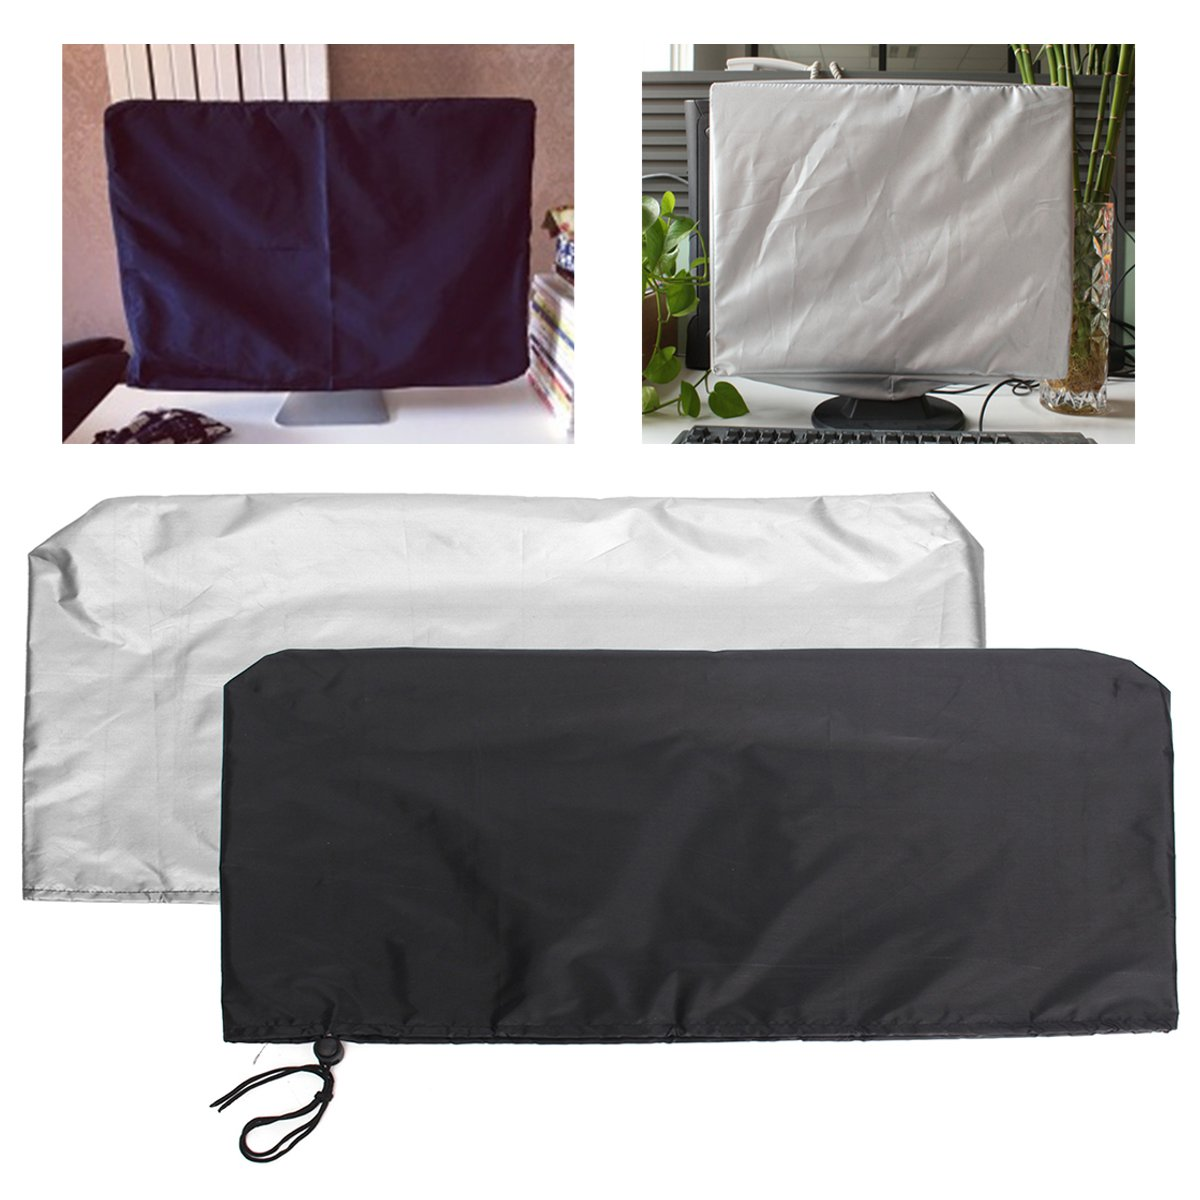 24 Inch Computers Flat Screen Monitor Dust Cover PC TV Fits Tablets Protectors Polyester Computer Covers Soft Lining 2 Colors